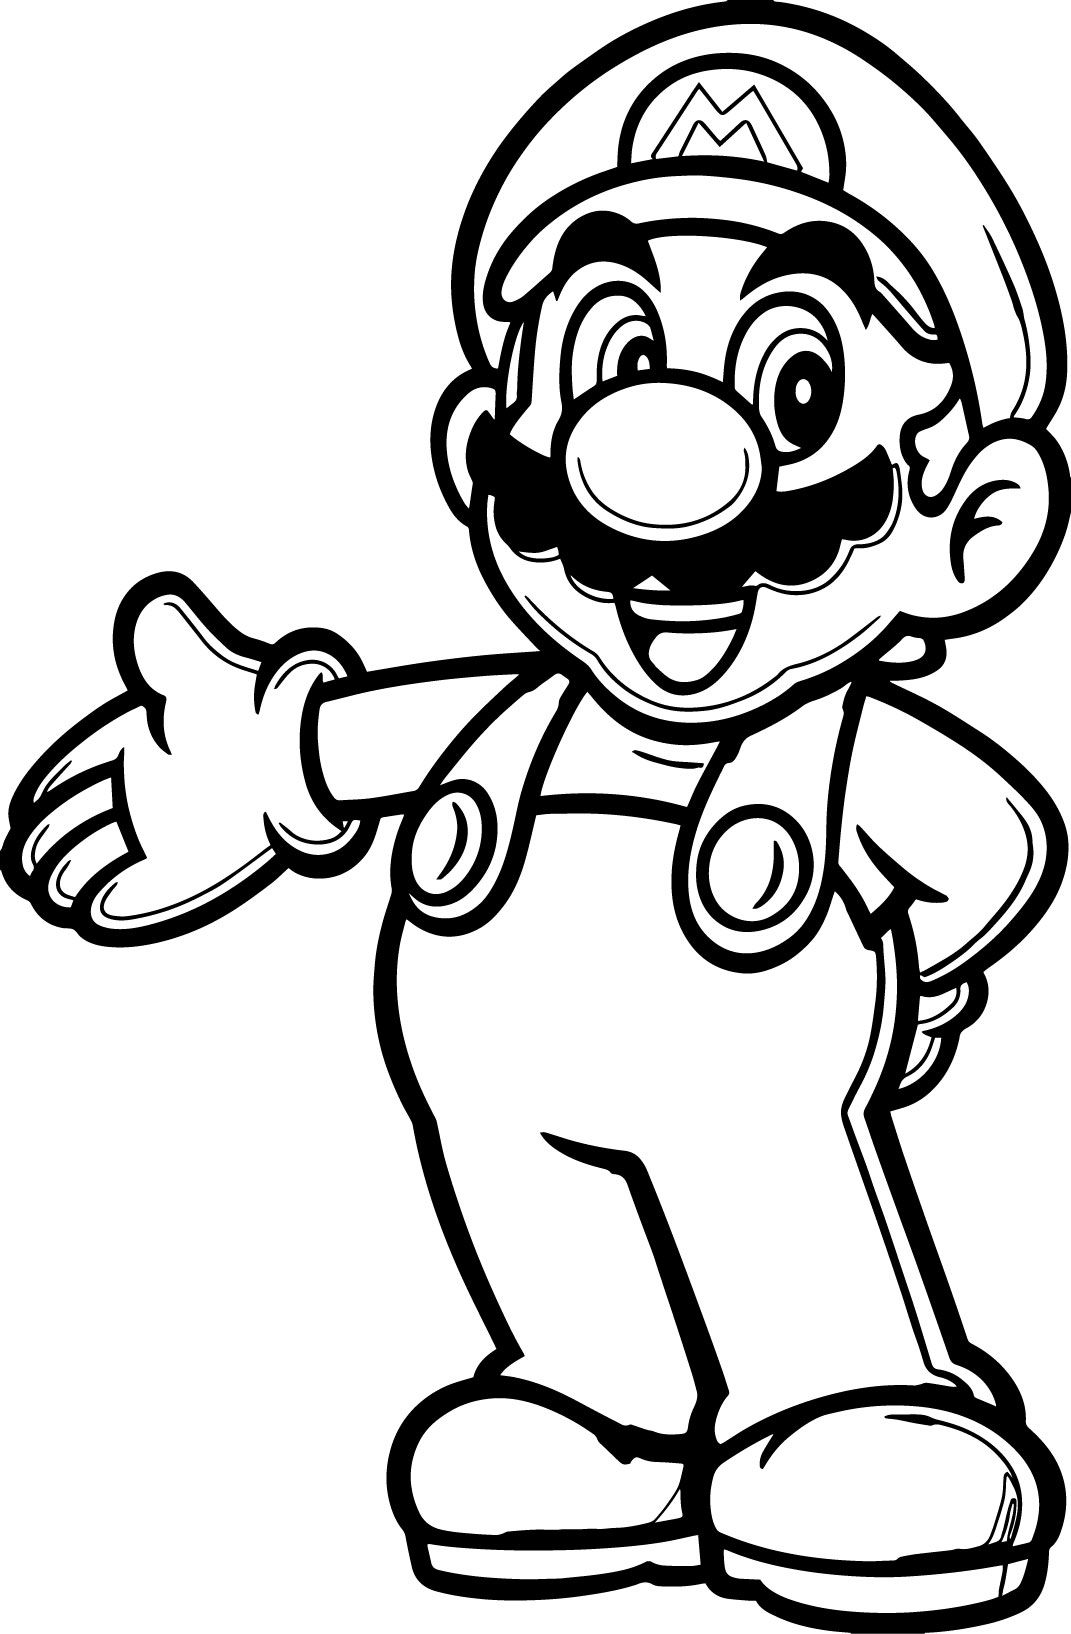 Mario bros coloring pages - Super Mario Galaxy 2 Print Out Amazing Super Mario Coloring Pages Pinterest Mario And Kids S